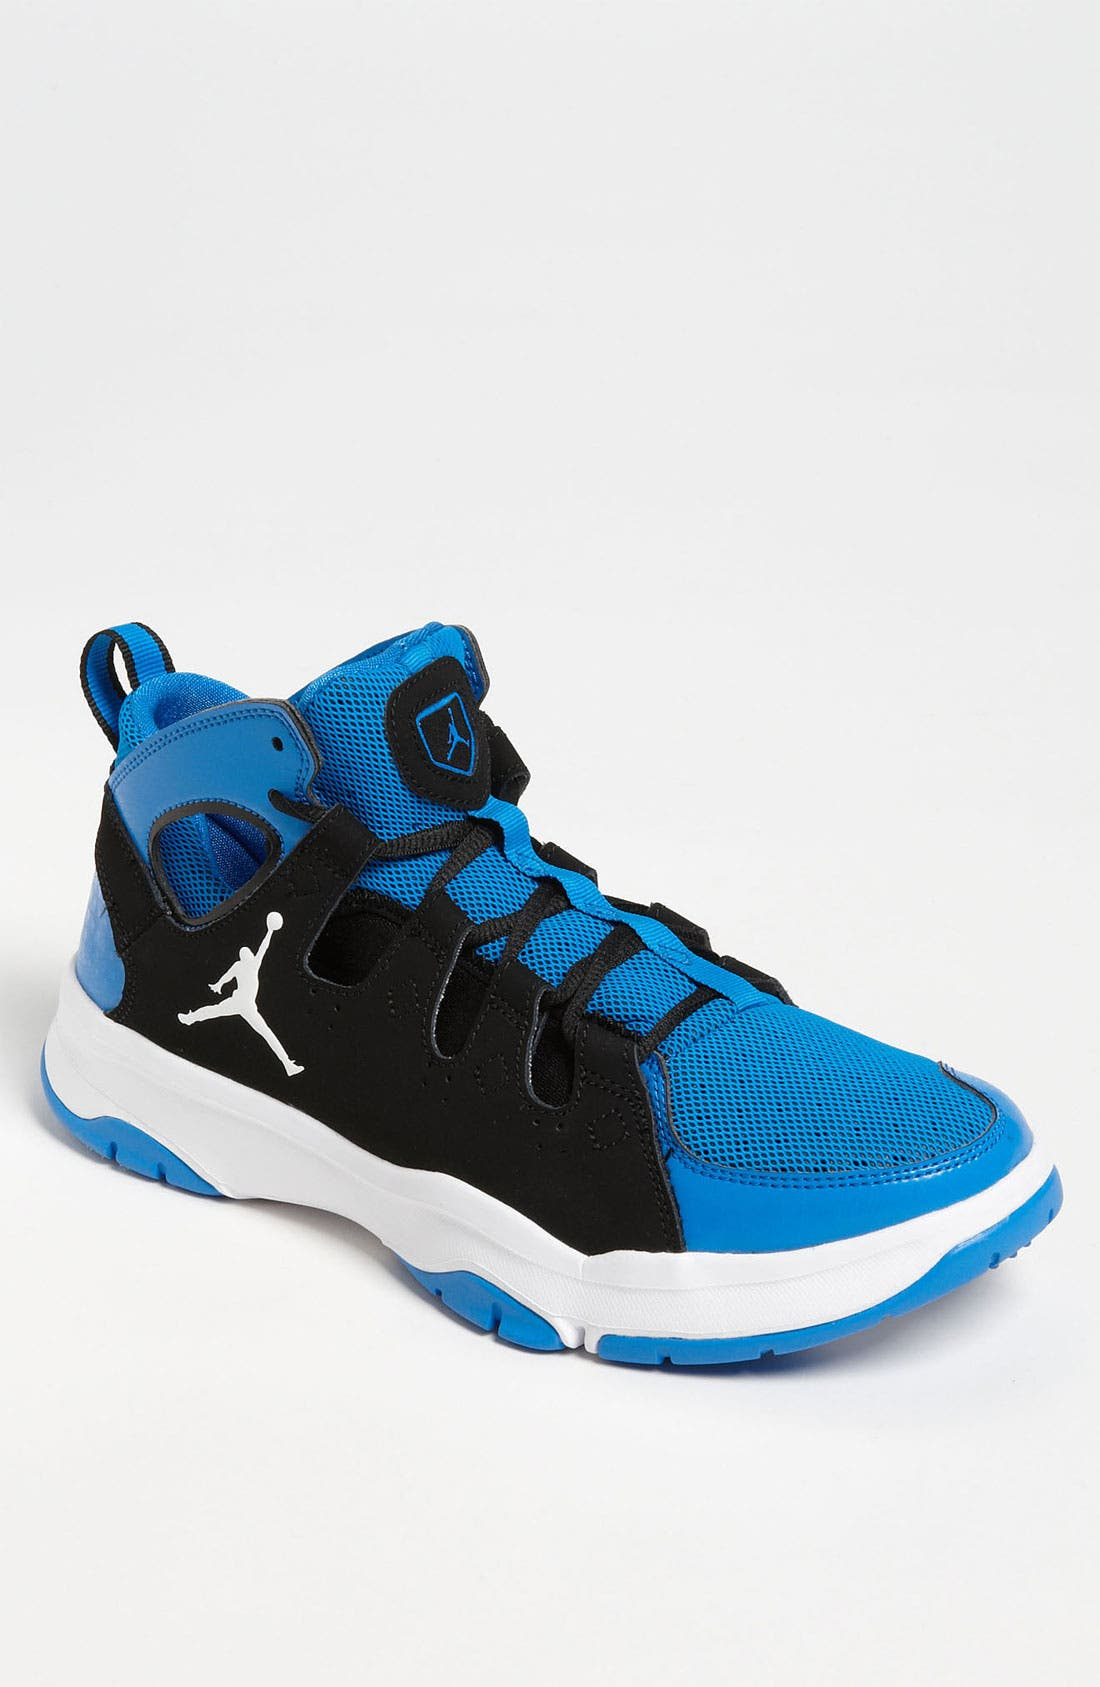 Alternate Image 1 Selected - Nike 'Jordan Legend TR' Basketball Shoe (Men) (Online Only)